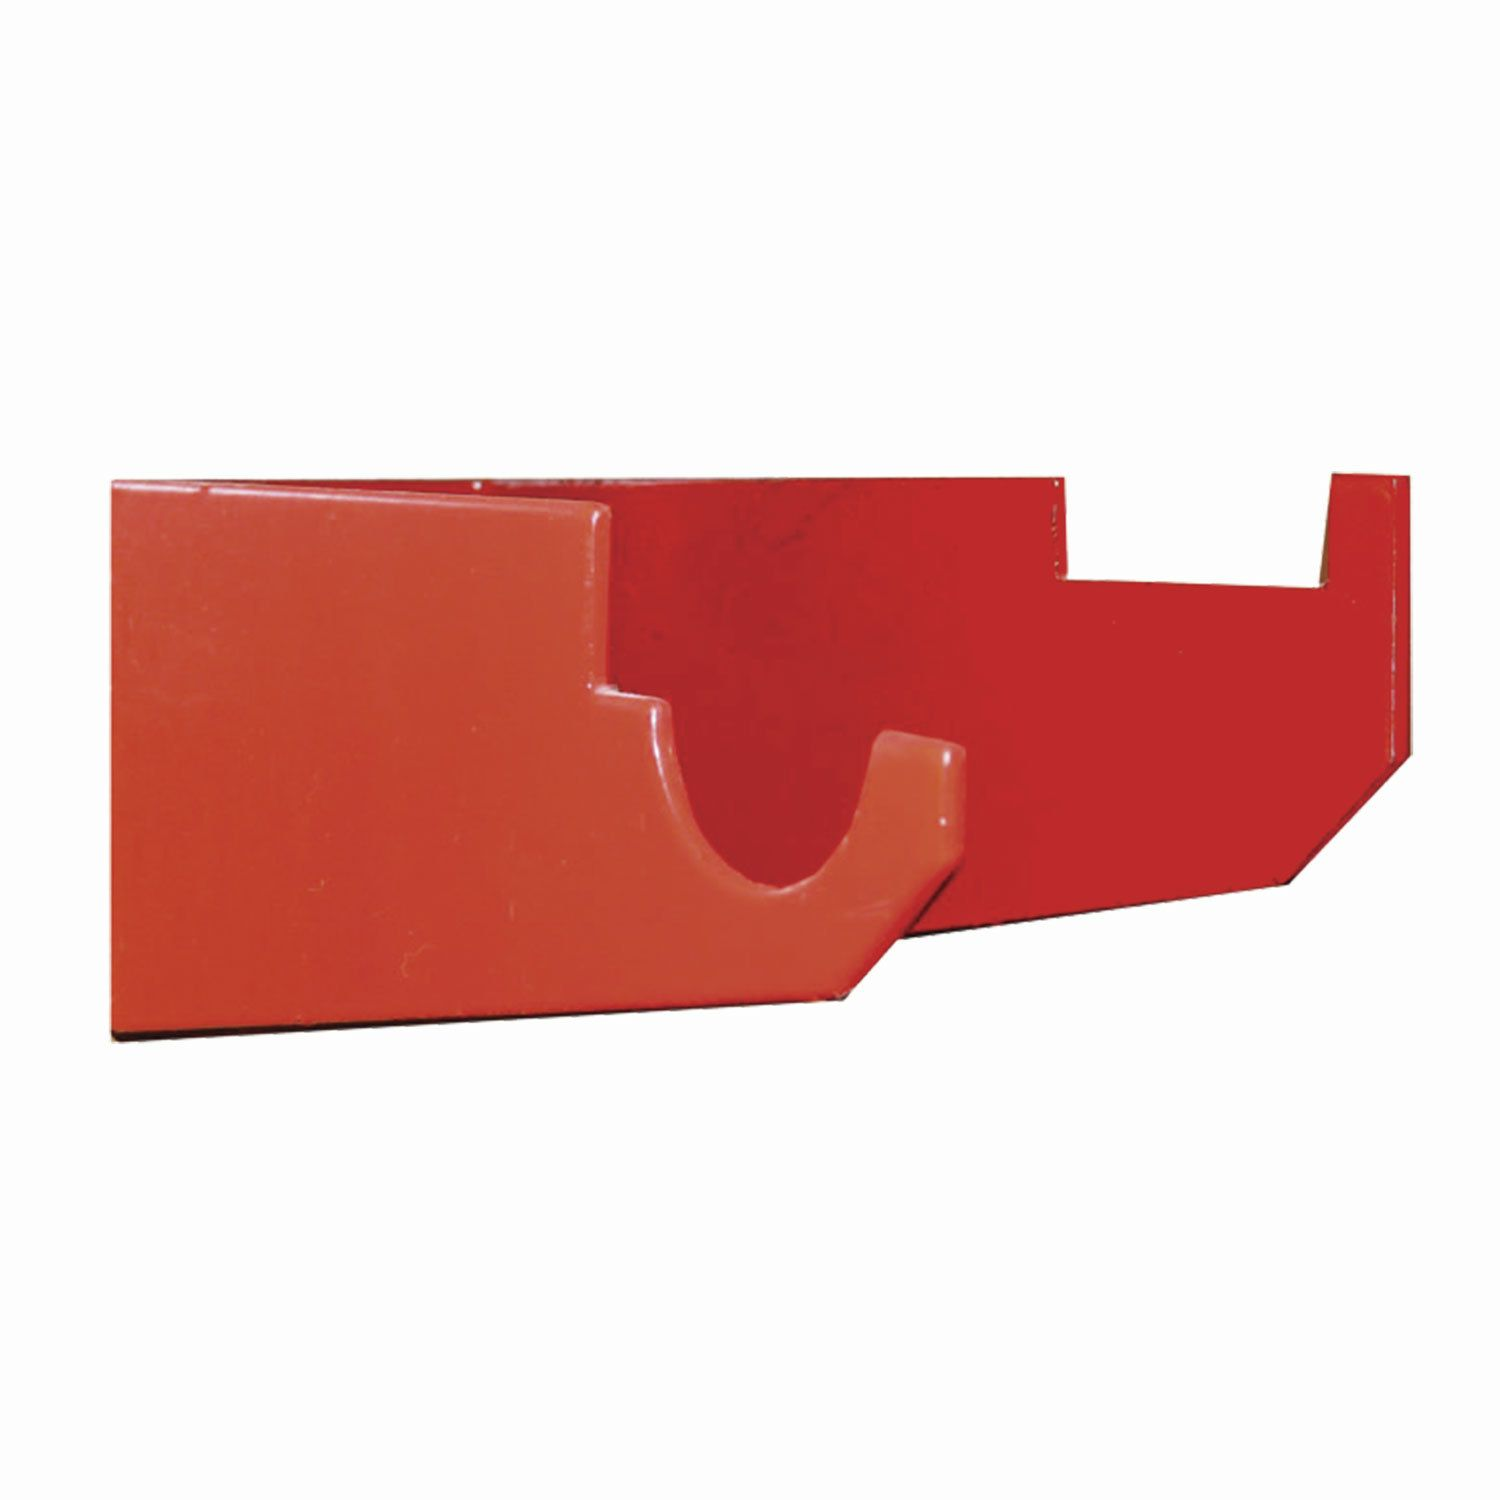 MIG / Wall bracket for portable dry powder fire extinguishers